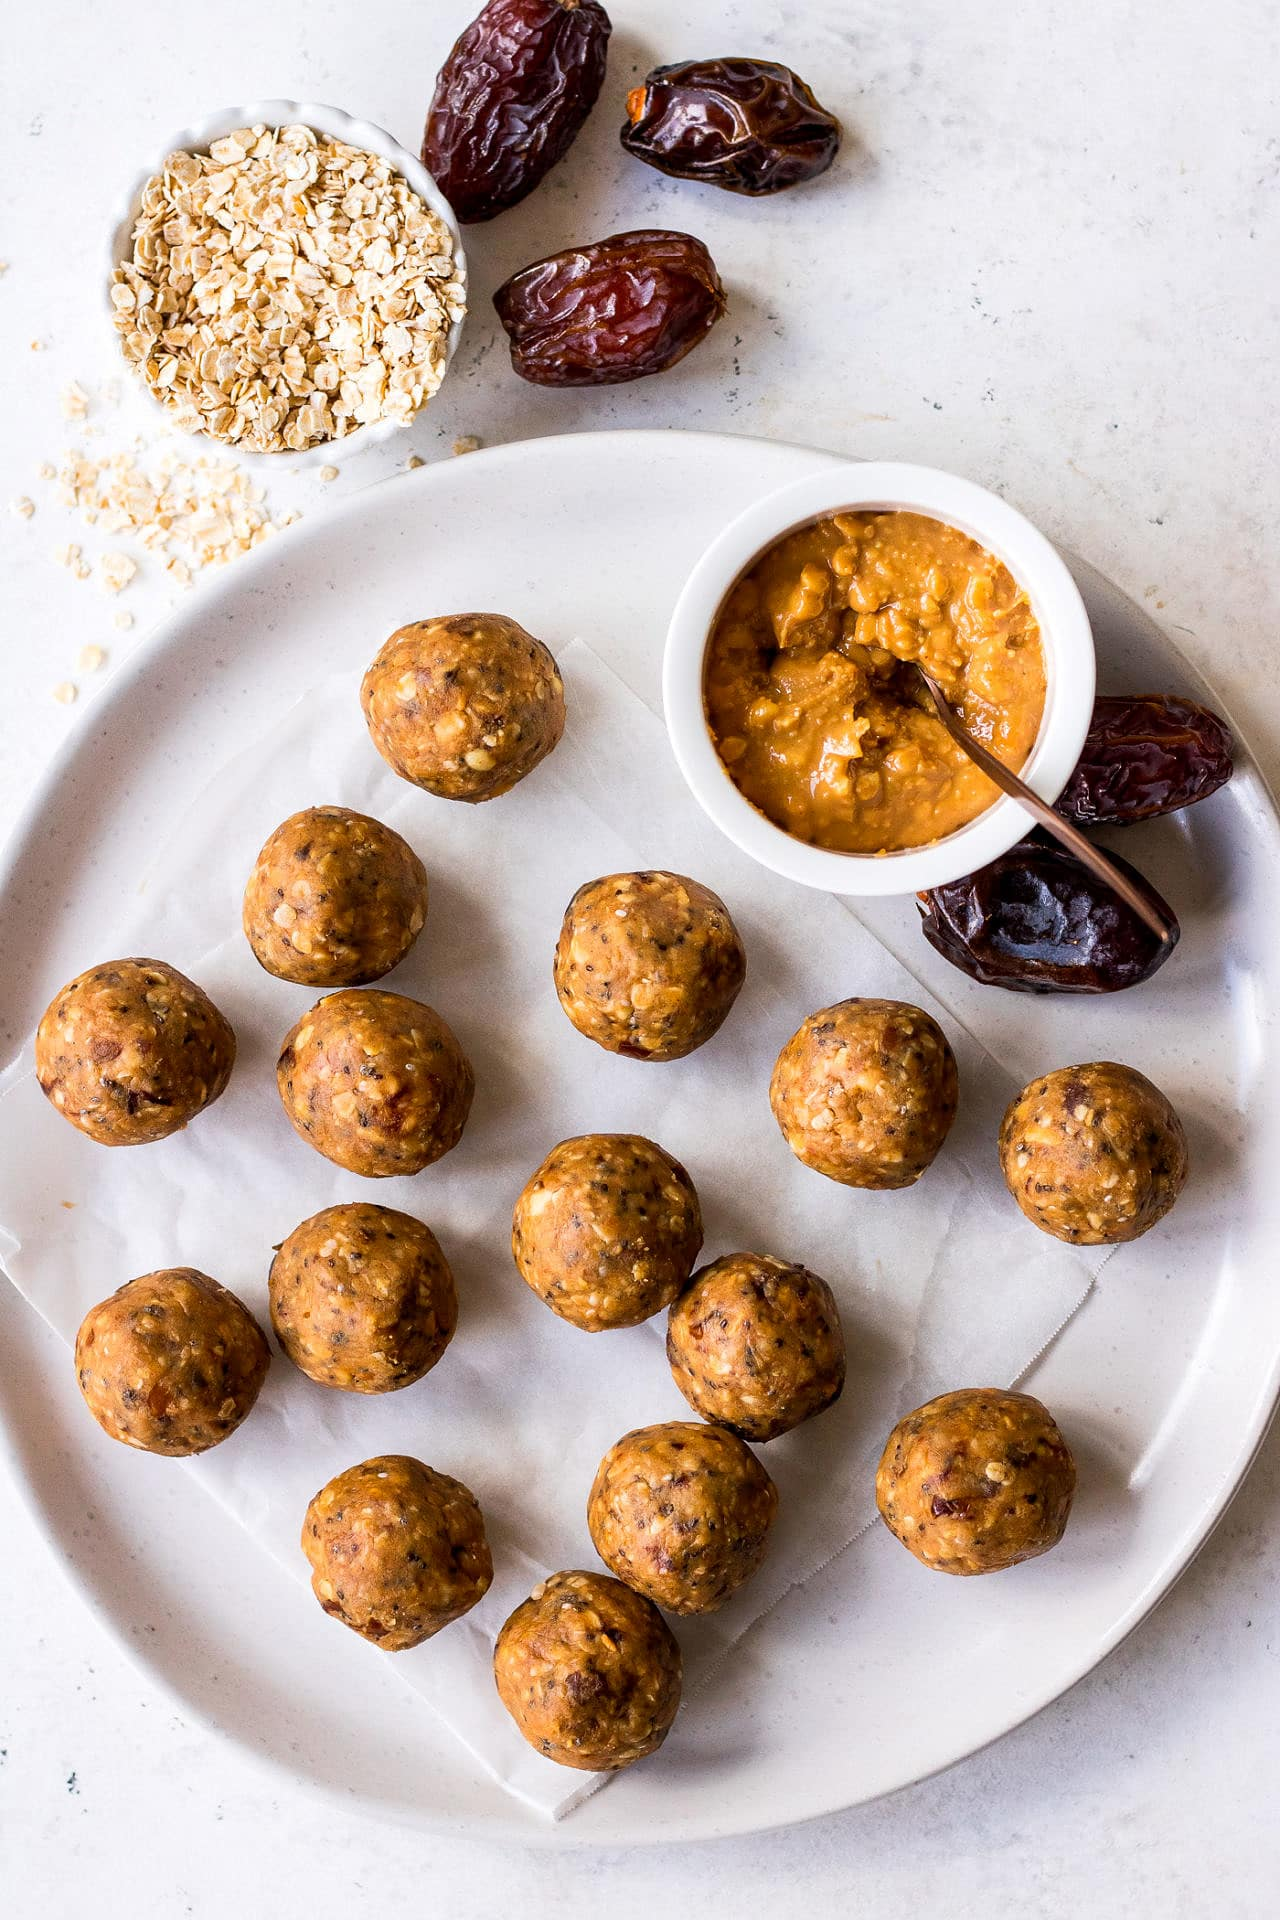 Top down view of a plate of peanut butter energy balls with a mini bowl of crunchy peanut butter, medjool dates and quick oats arranged around them